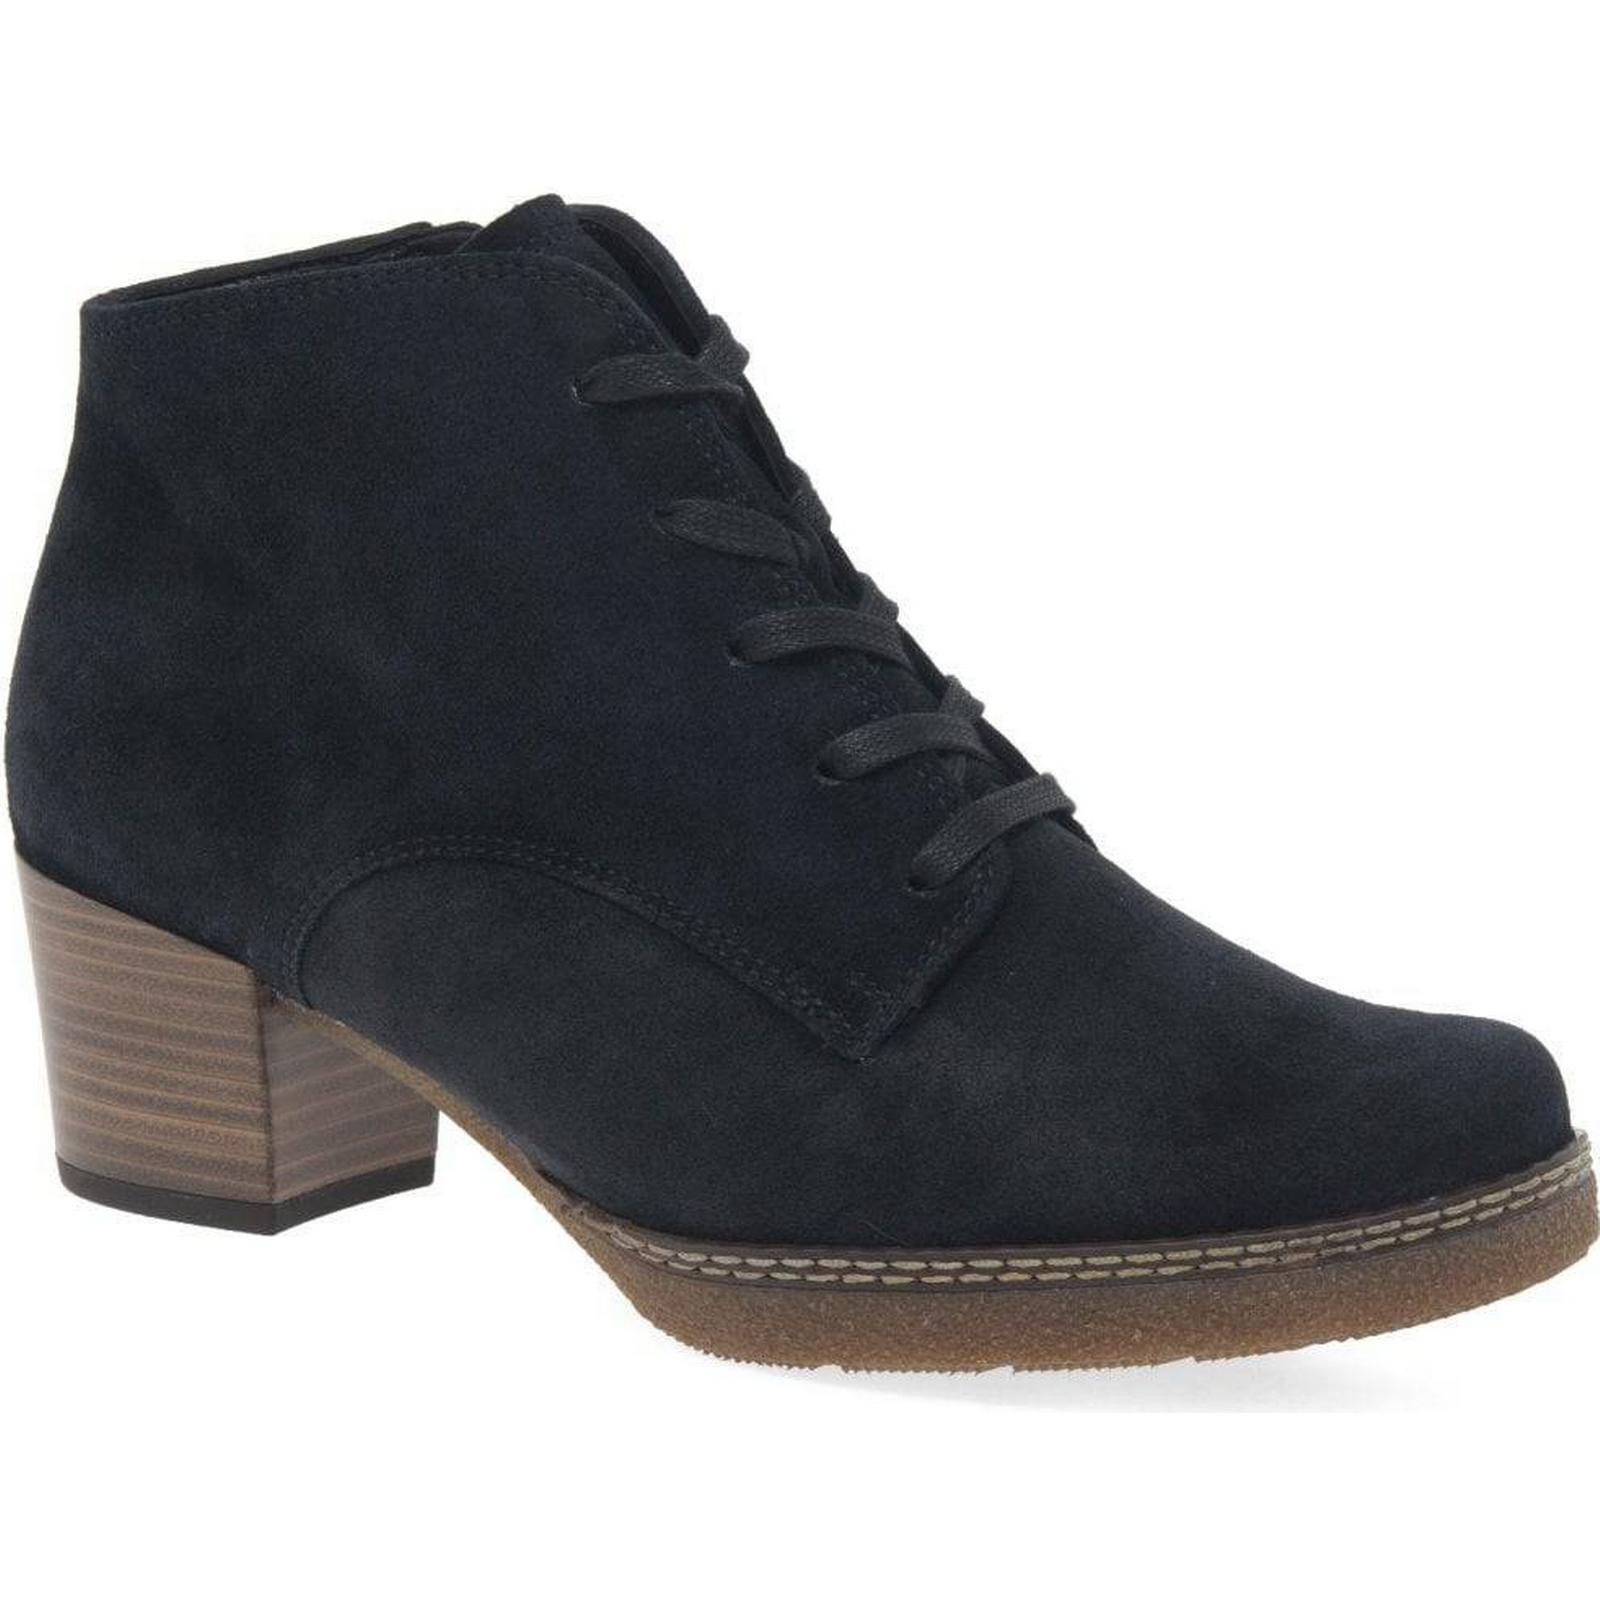 Gabor Mayfair Womens Suede Ankle Boots 4 Colour: Pacific Suede, Size: 4 Boots 802b3b